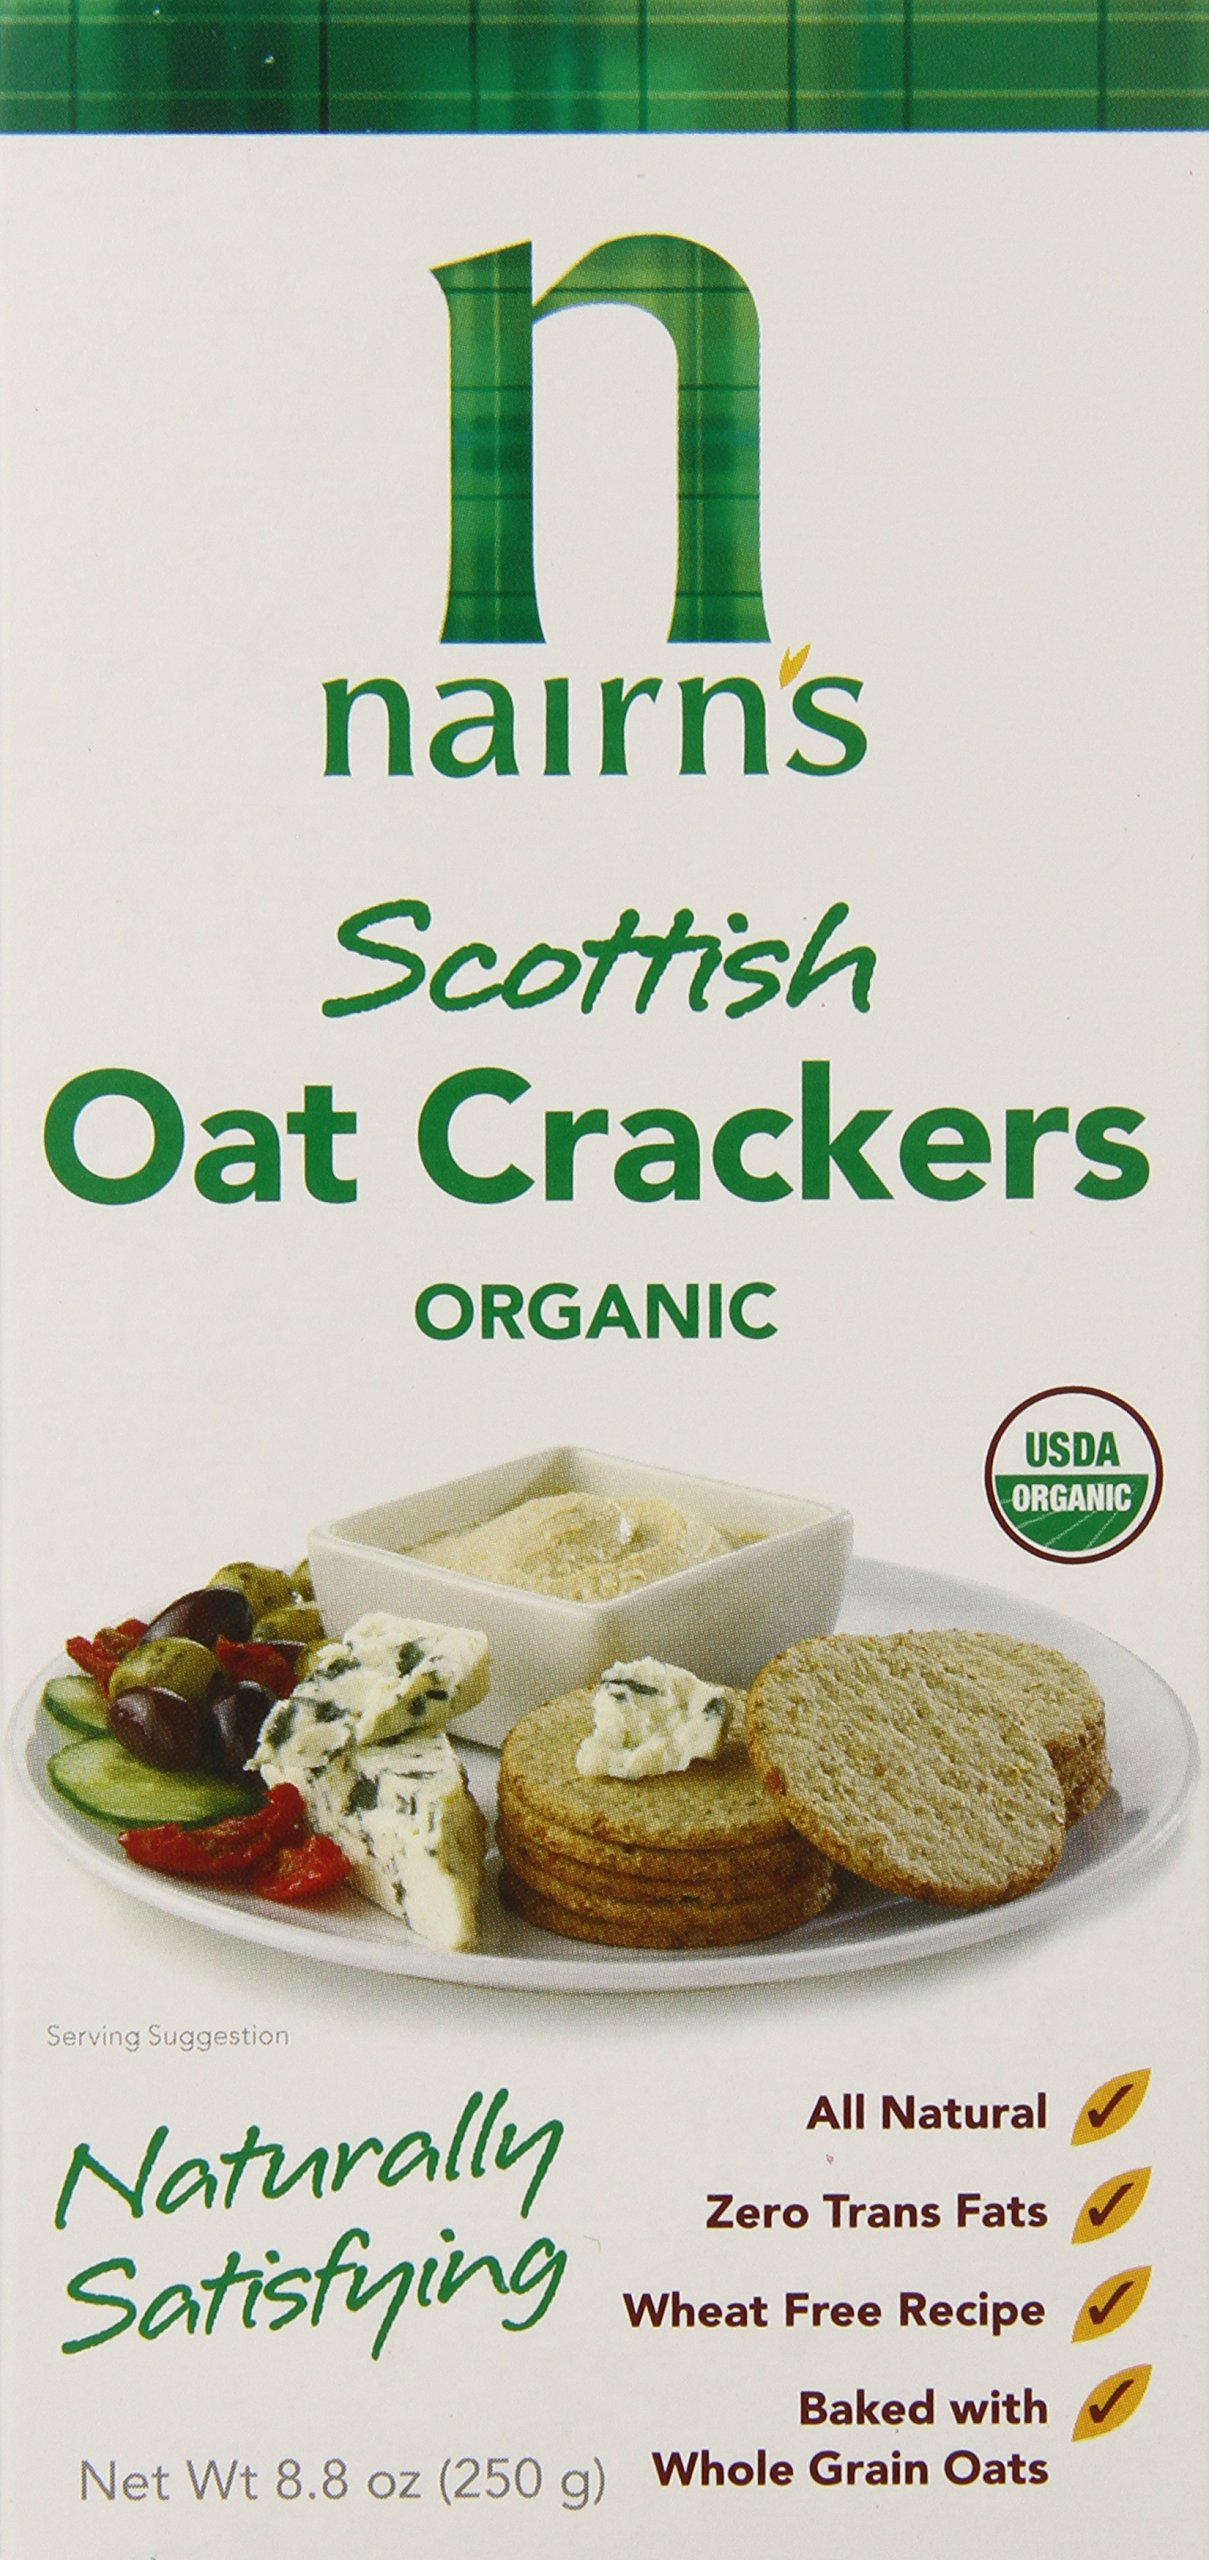 Nairn's Organic Oatcake Crackers (Green Box), 8.8-Ounce Boxes (Pack of 6)